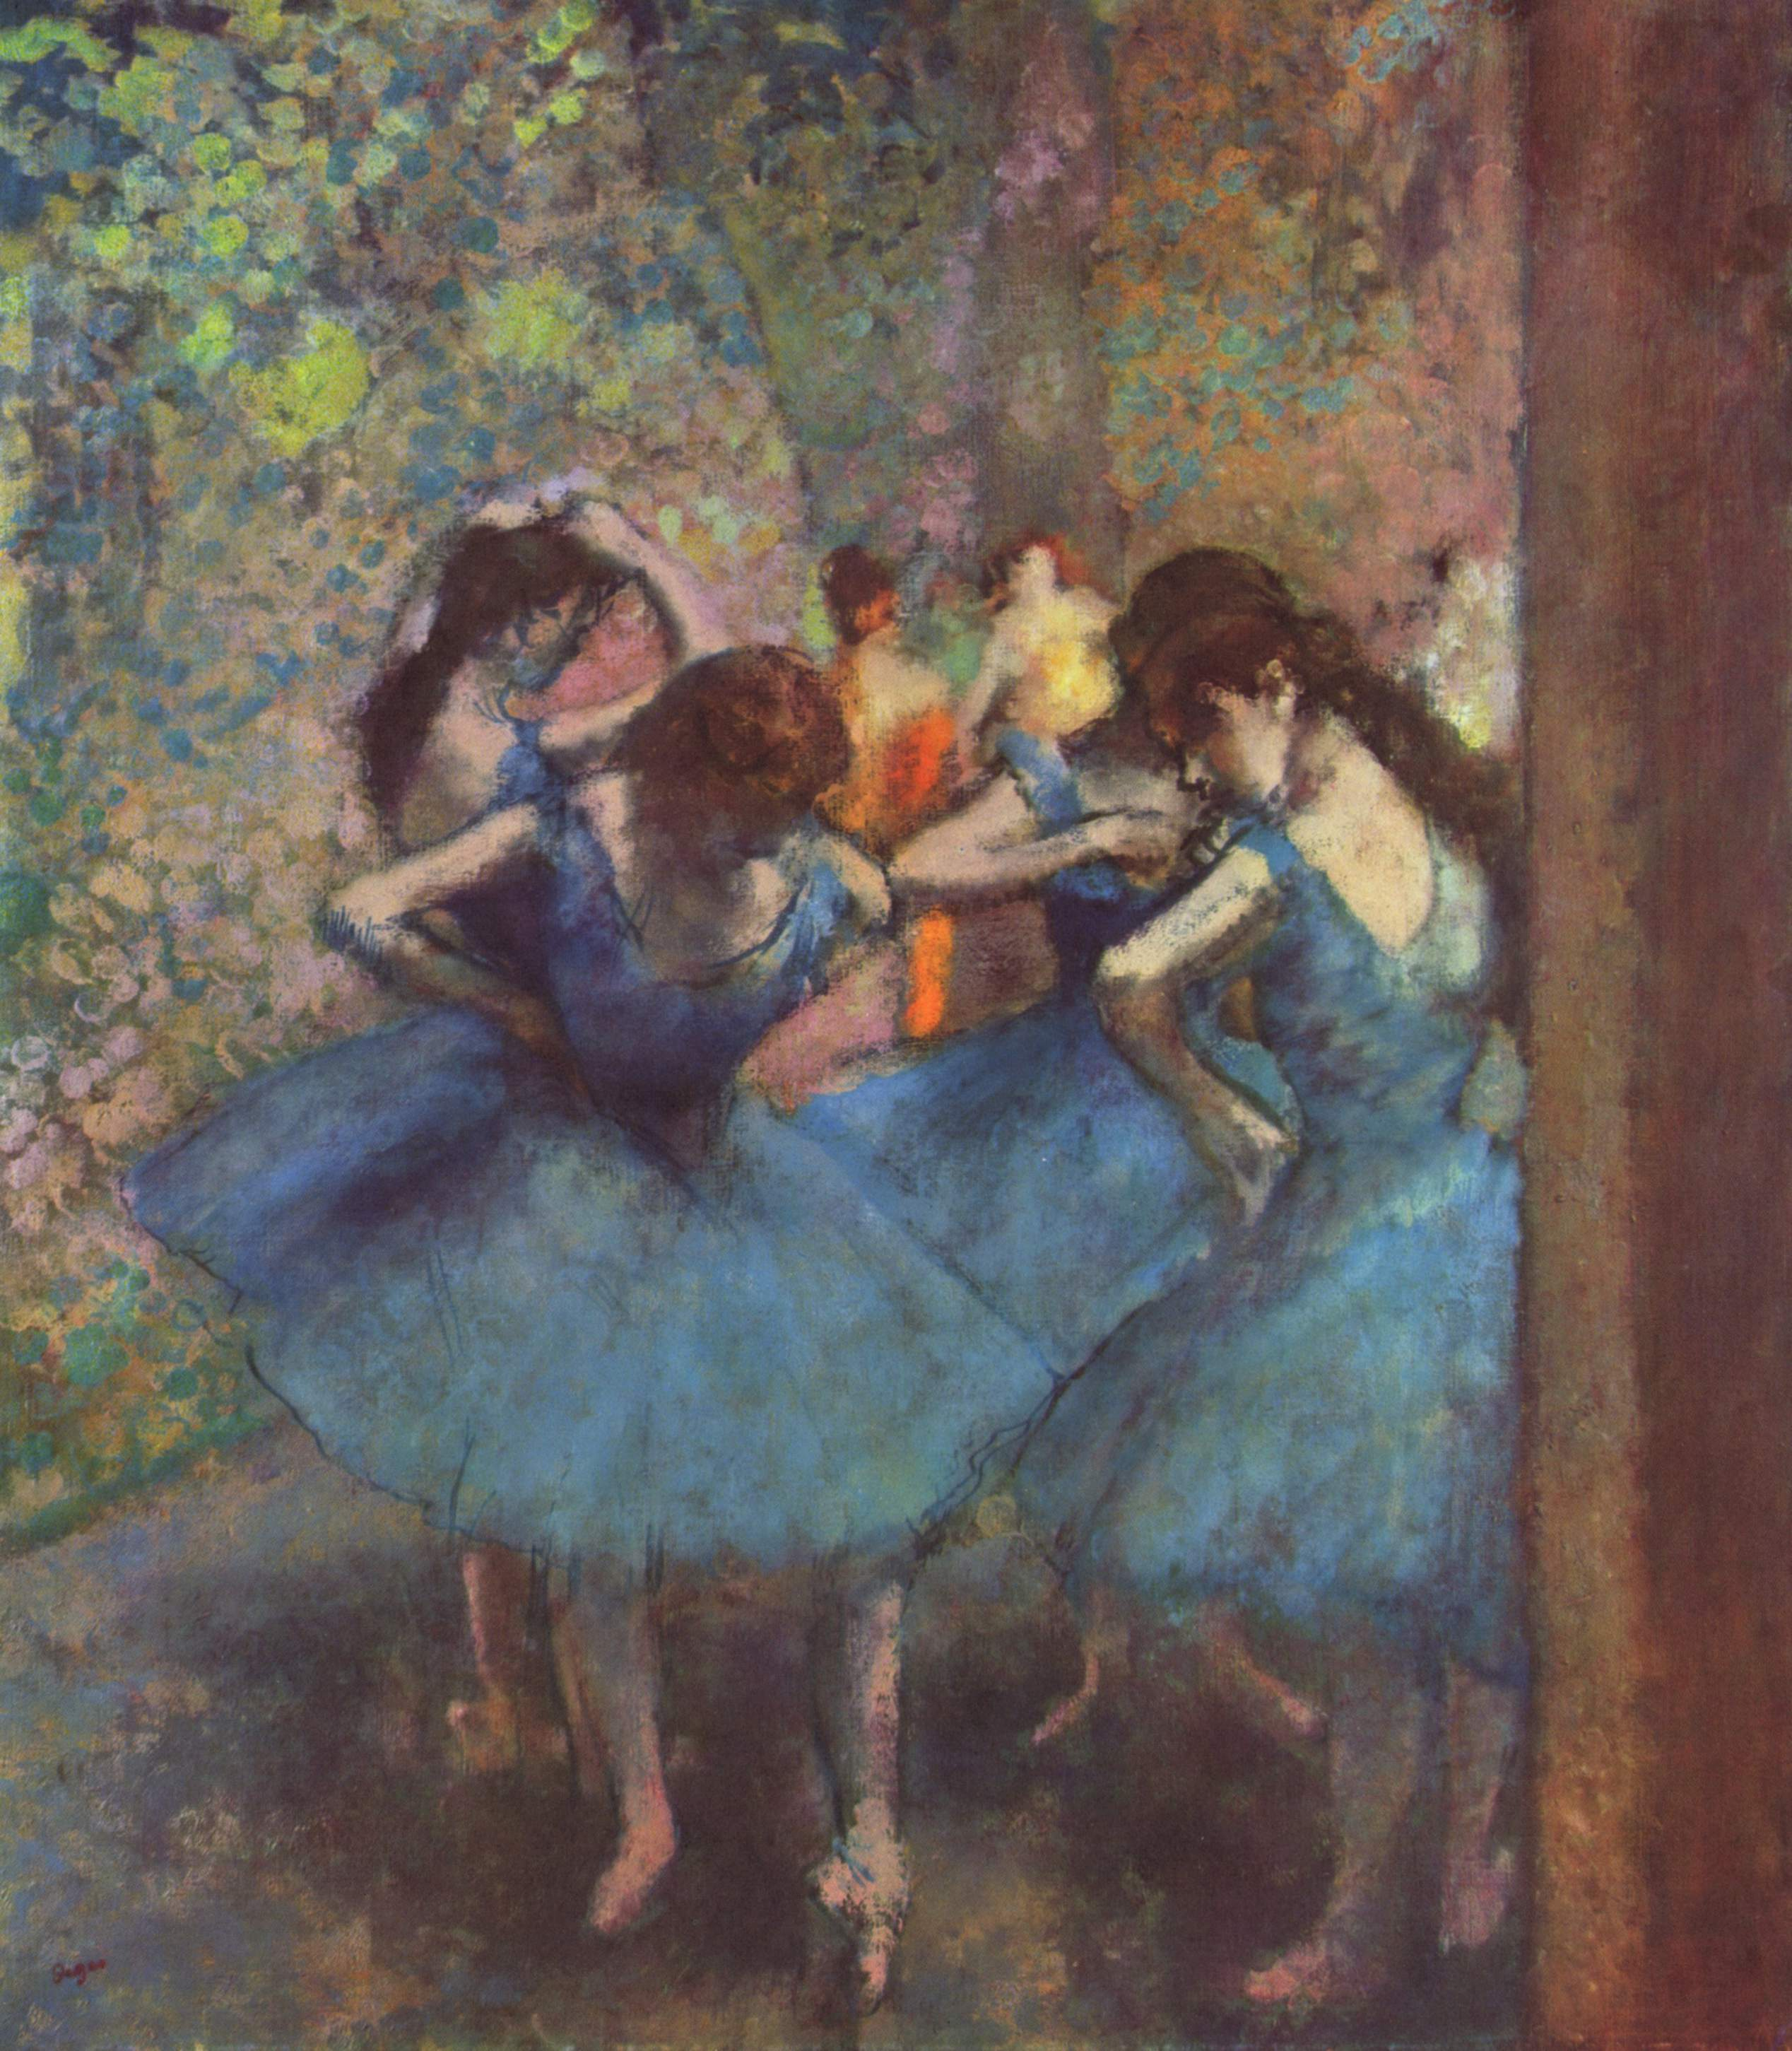 Edgar_Germain_Hilaire_Degas_071